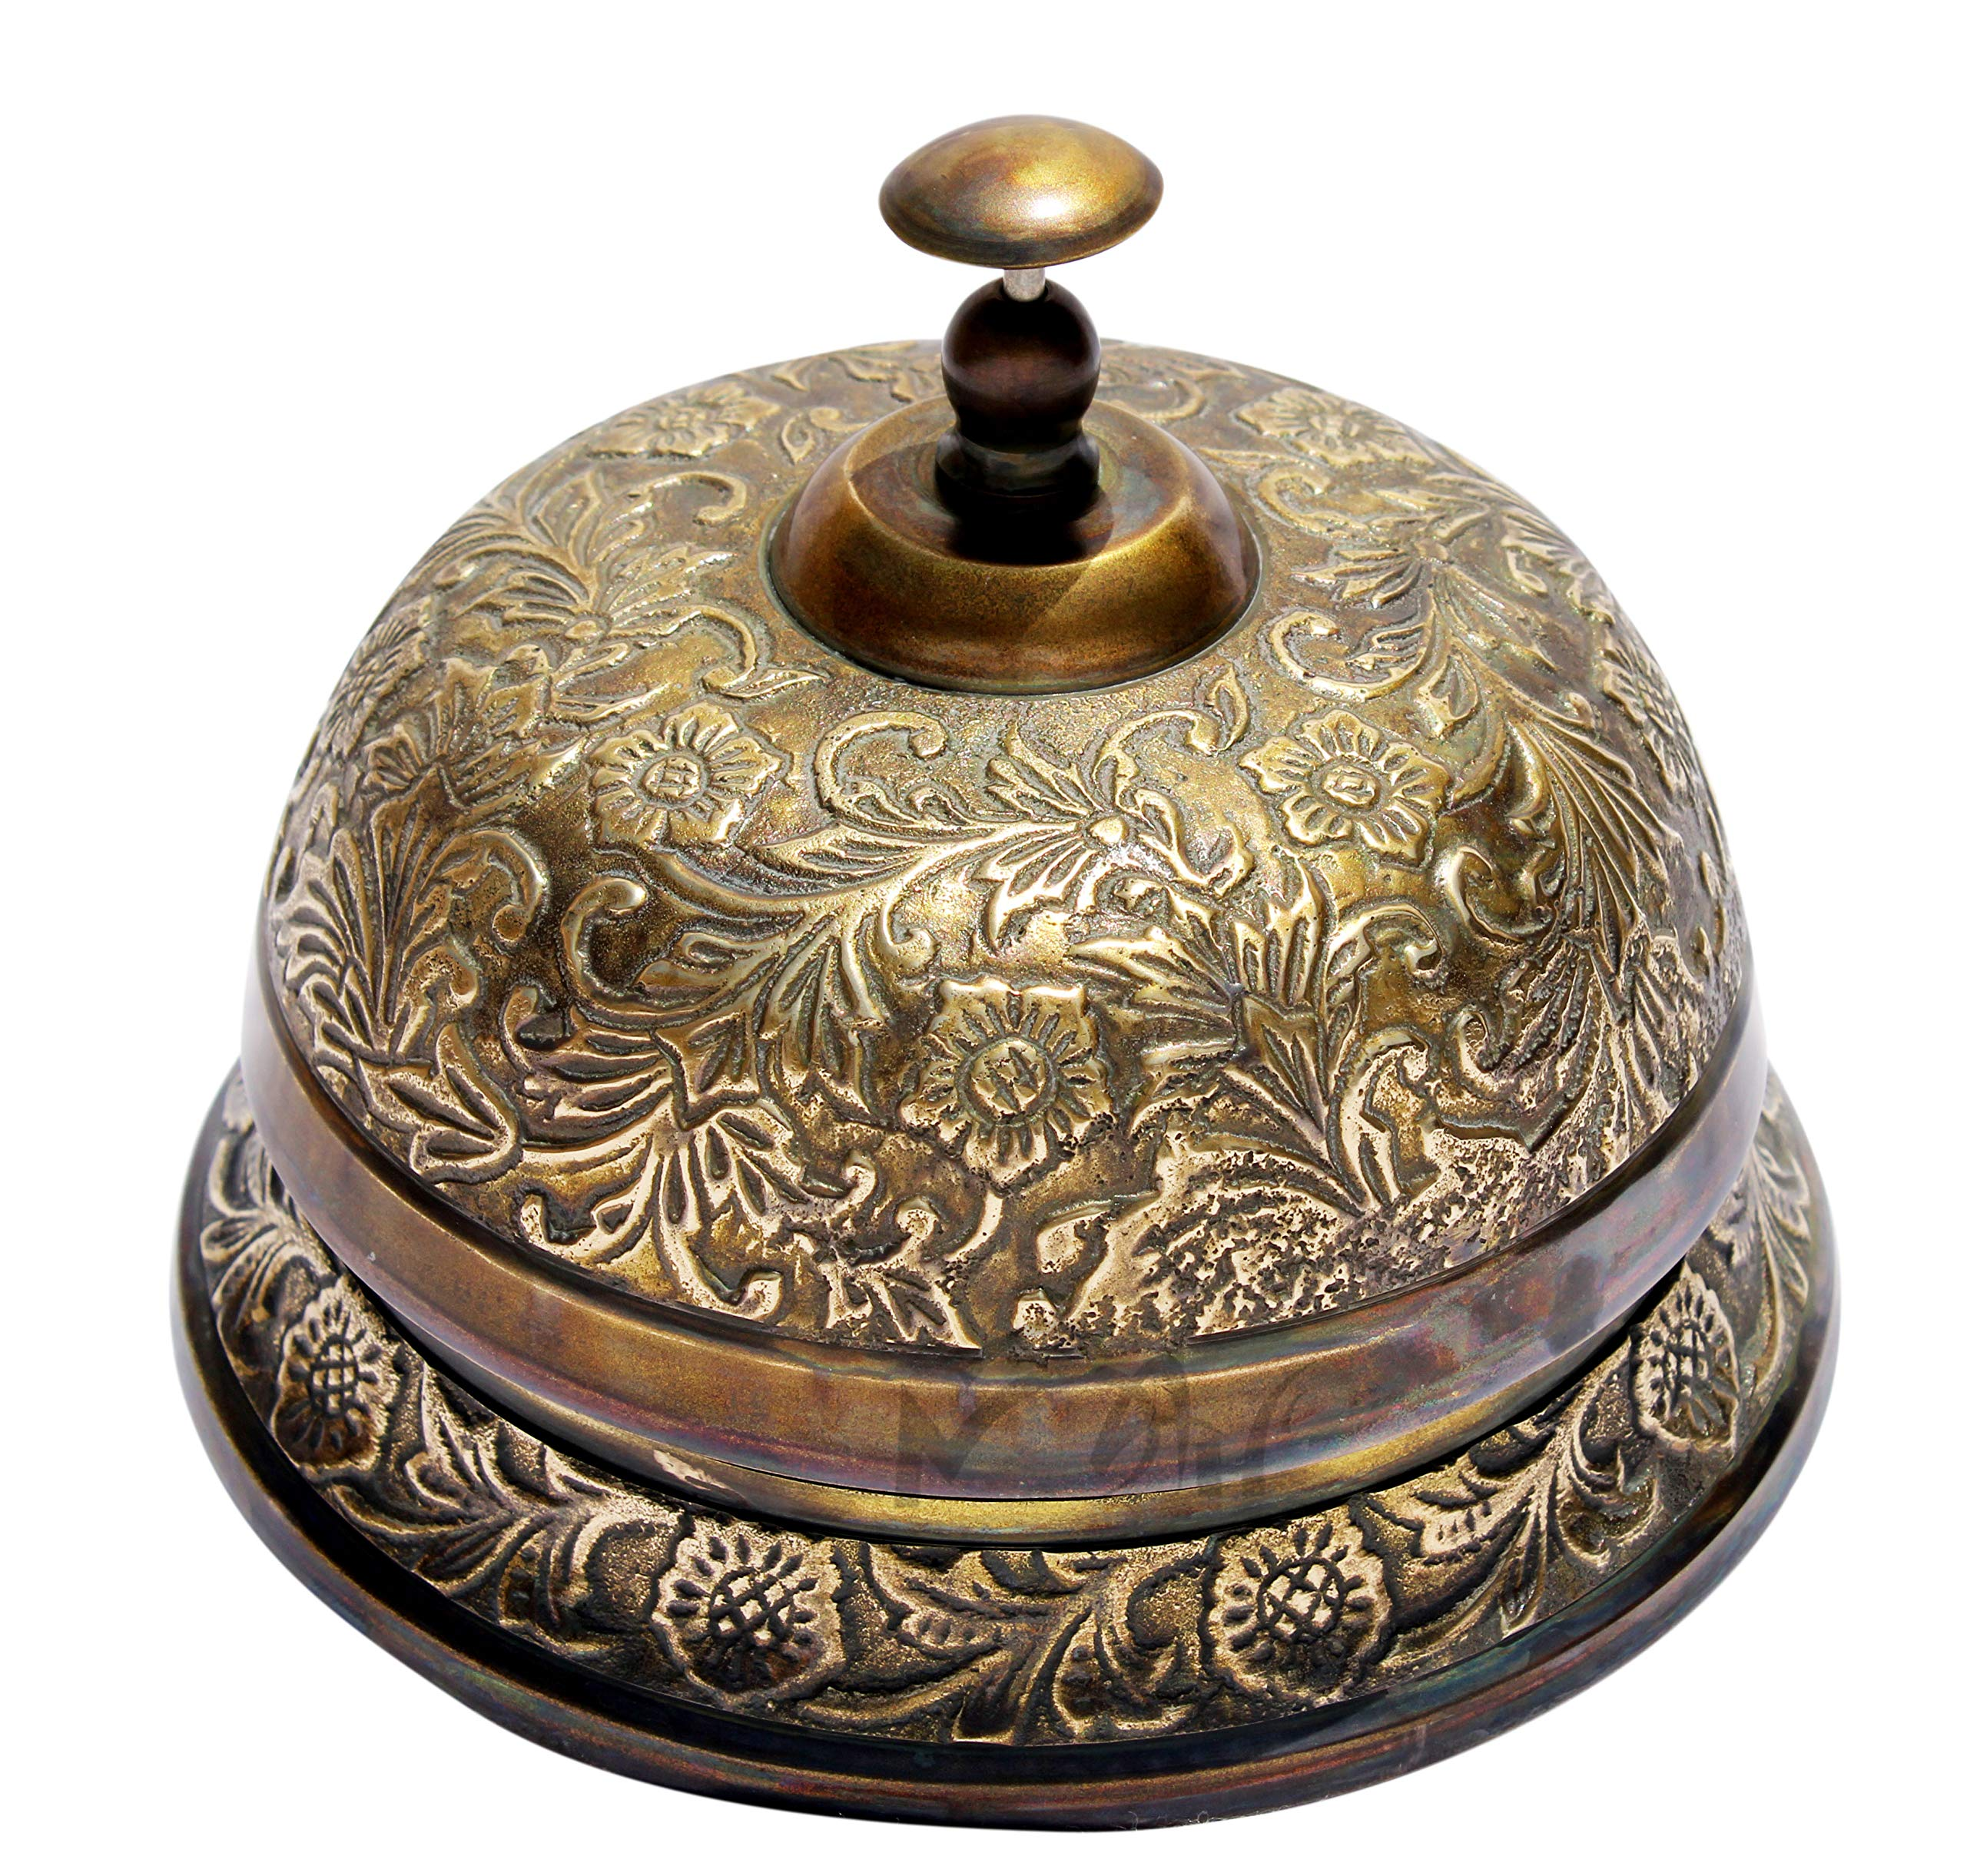 MAH Floral Counter Bell Ornate Desk Bell Table Bells Call Bell Reception Bell (5.5 inches, Brass Antique) C-3064